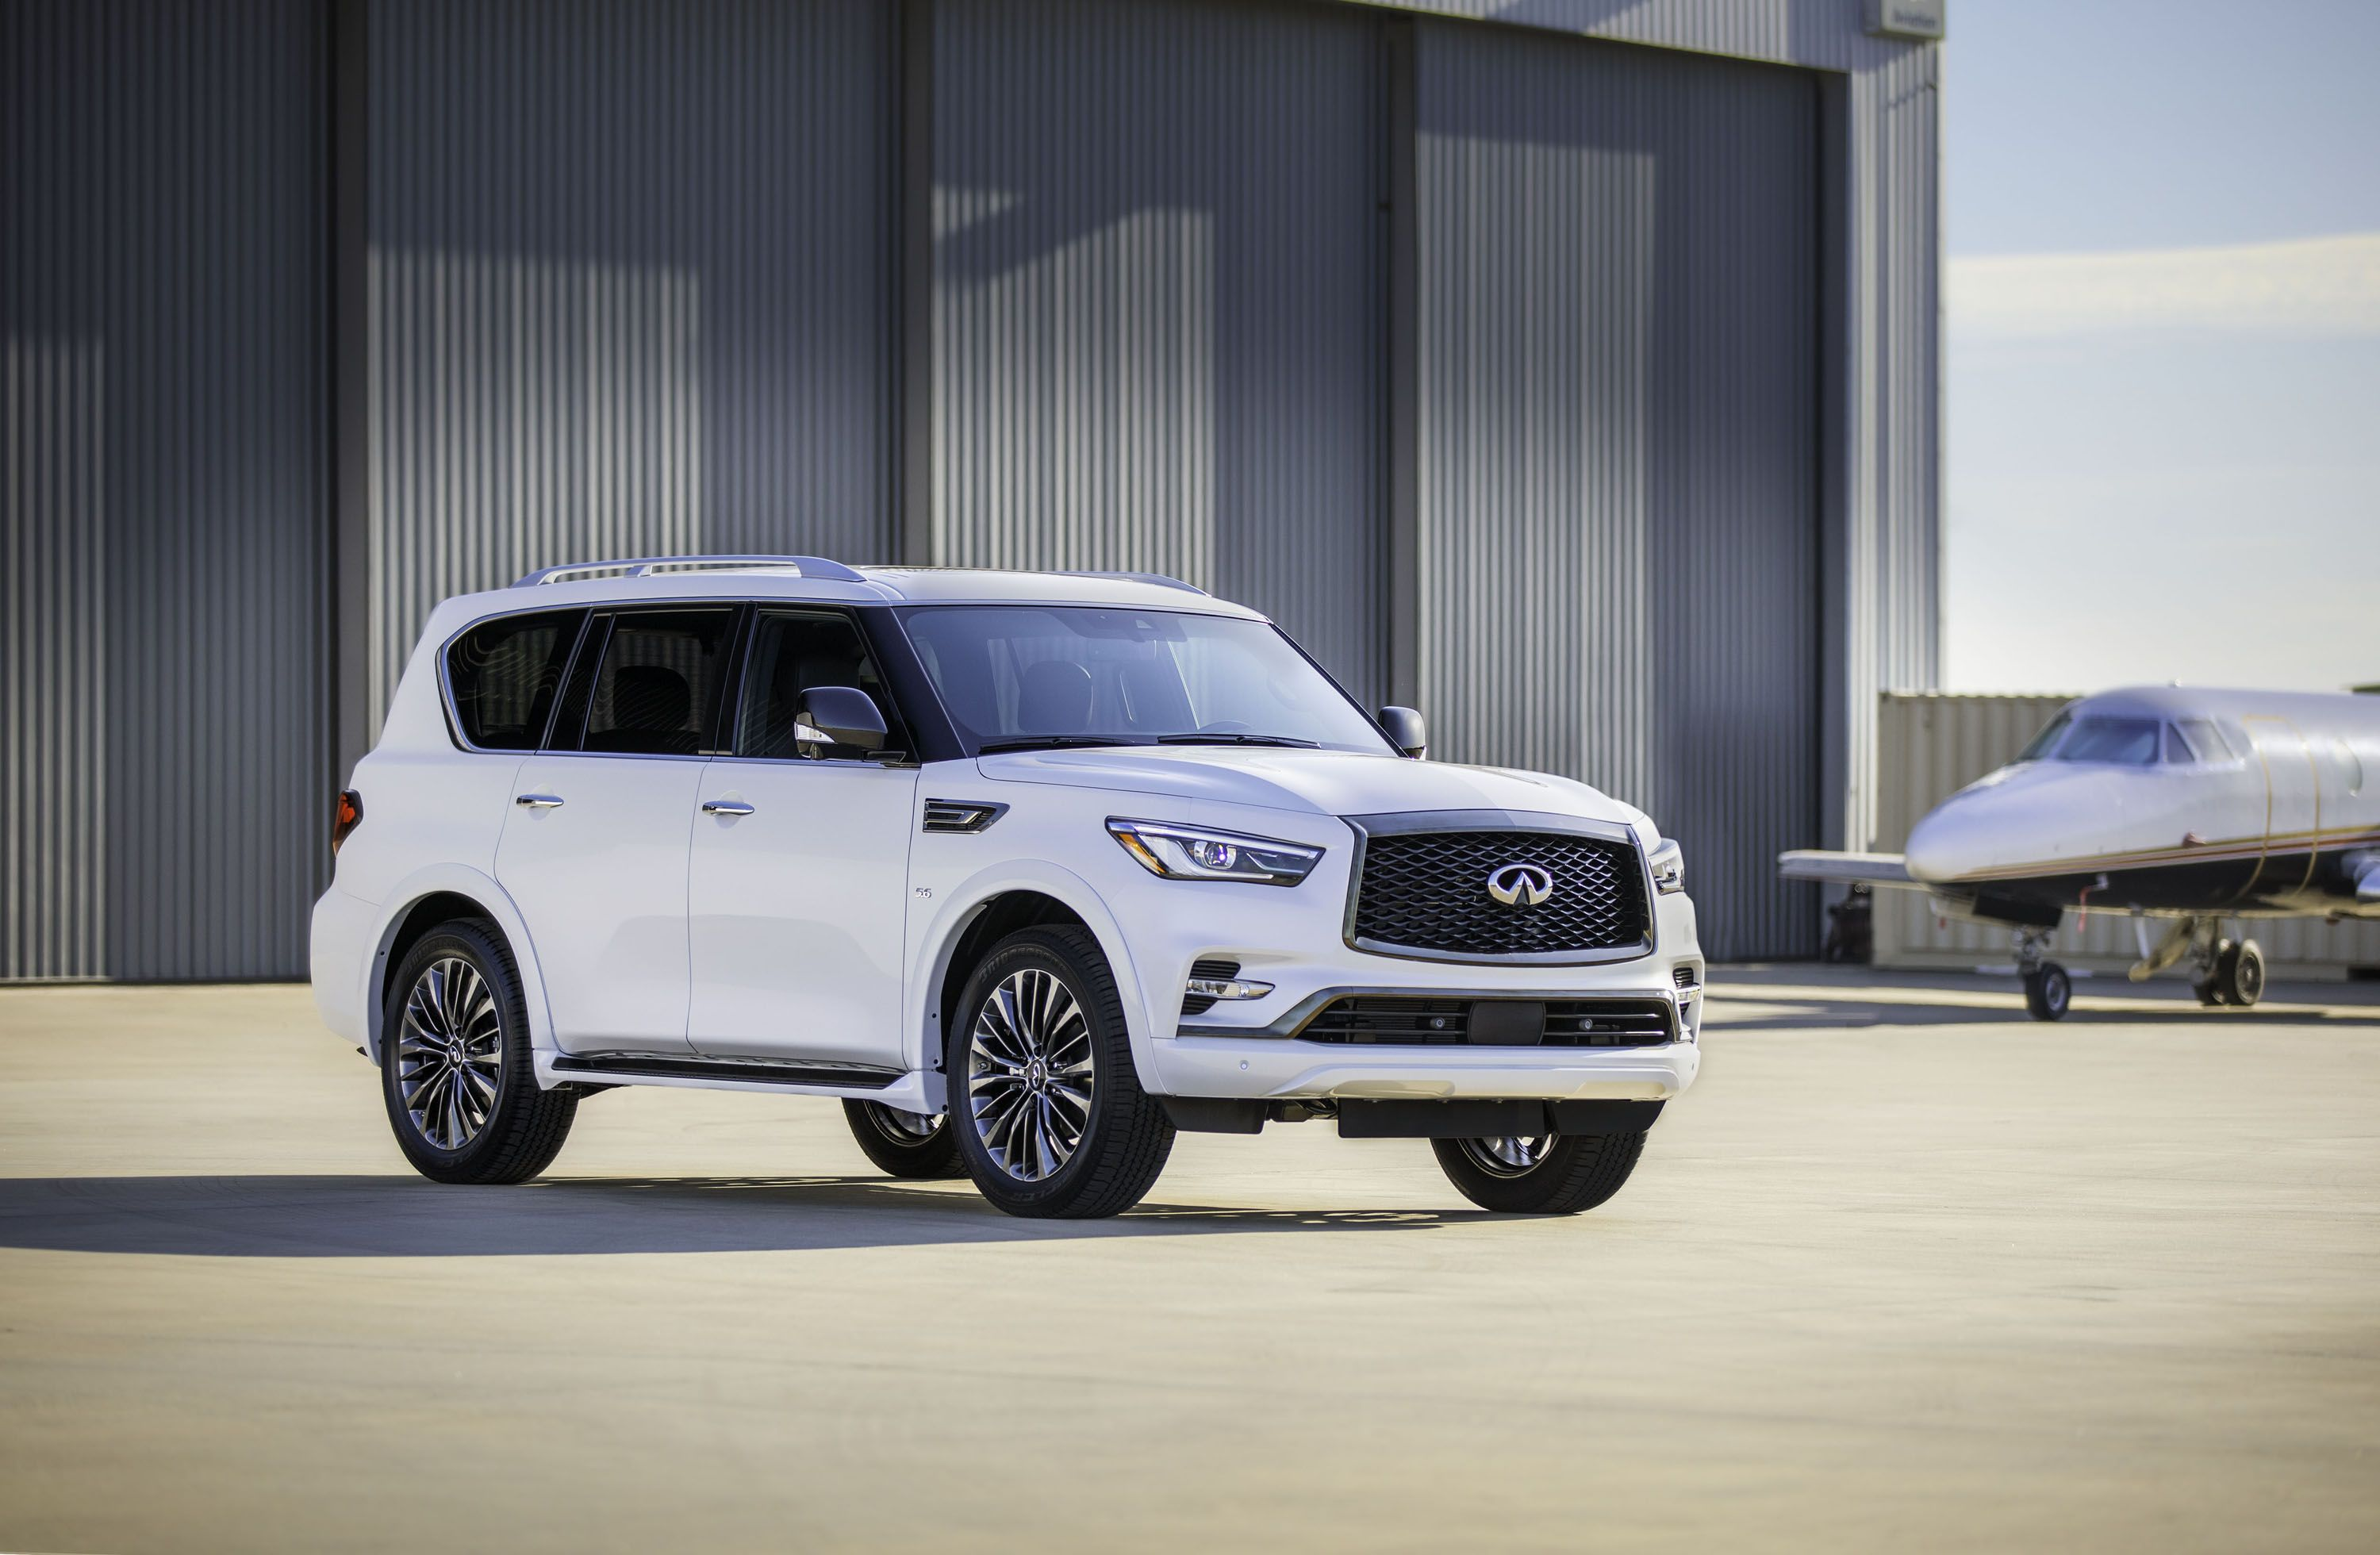 2020 Infiniti Qx80 Updates Its Cabin Aesthetics Tech Safety Systems In 2020 Infiniti Suv Large Suv